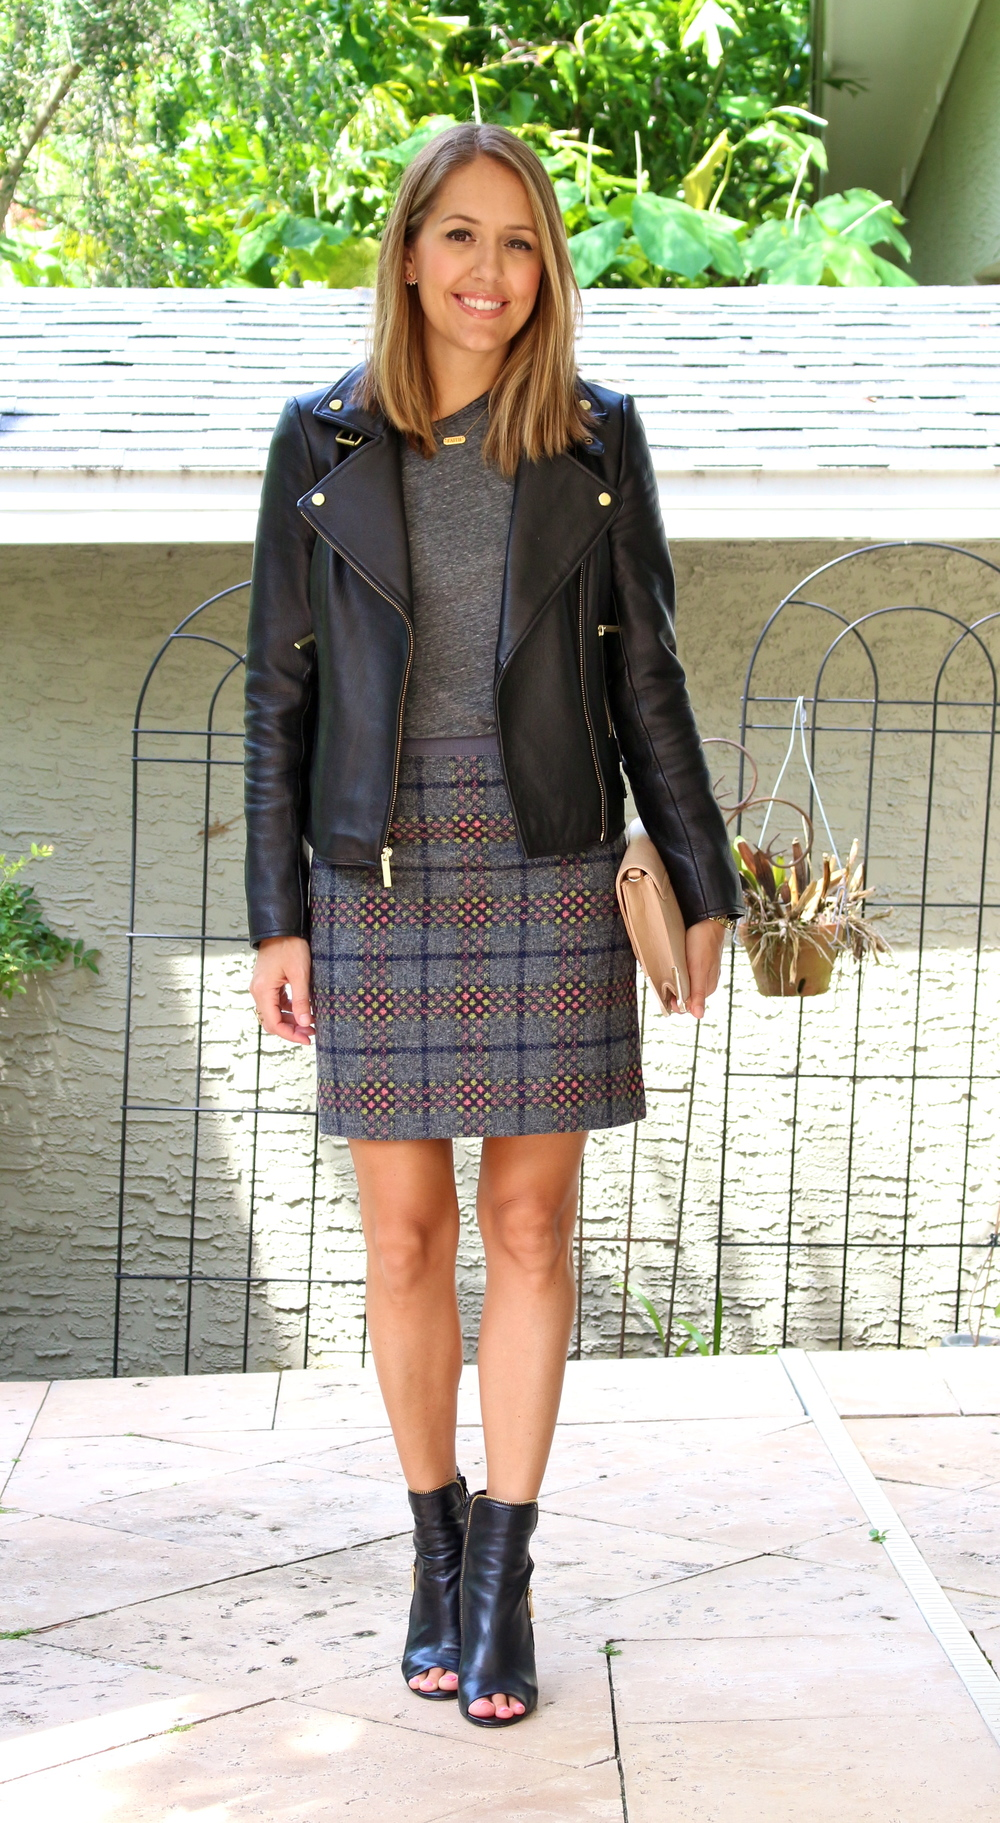 Leather jacket, gray tee, plaid skirt